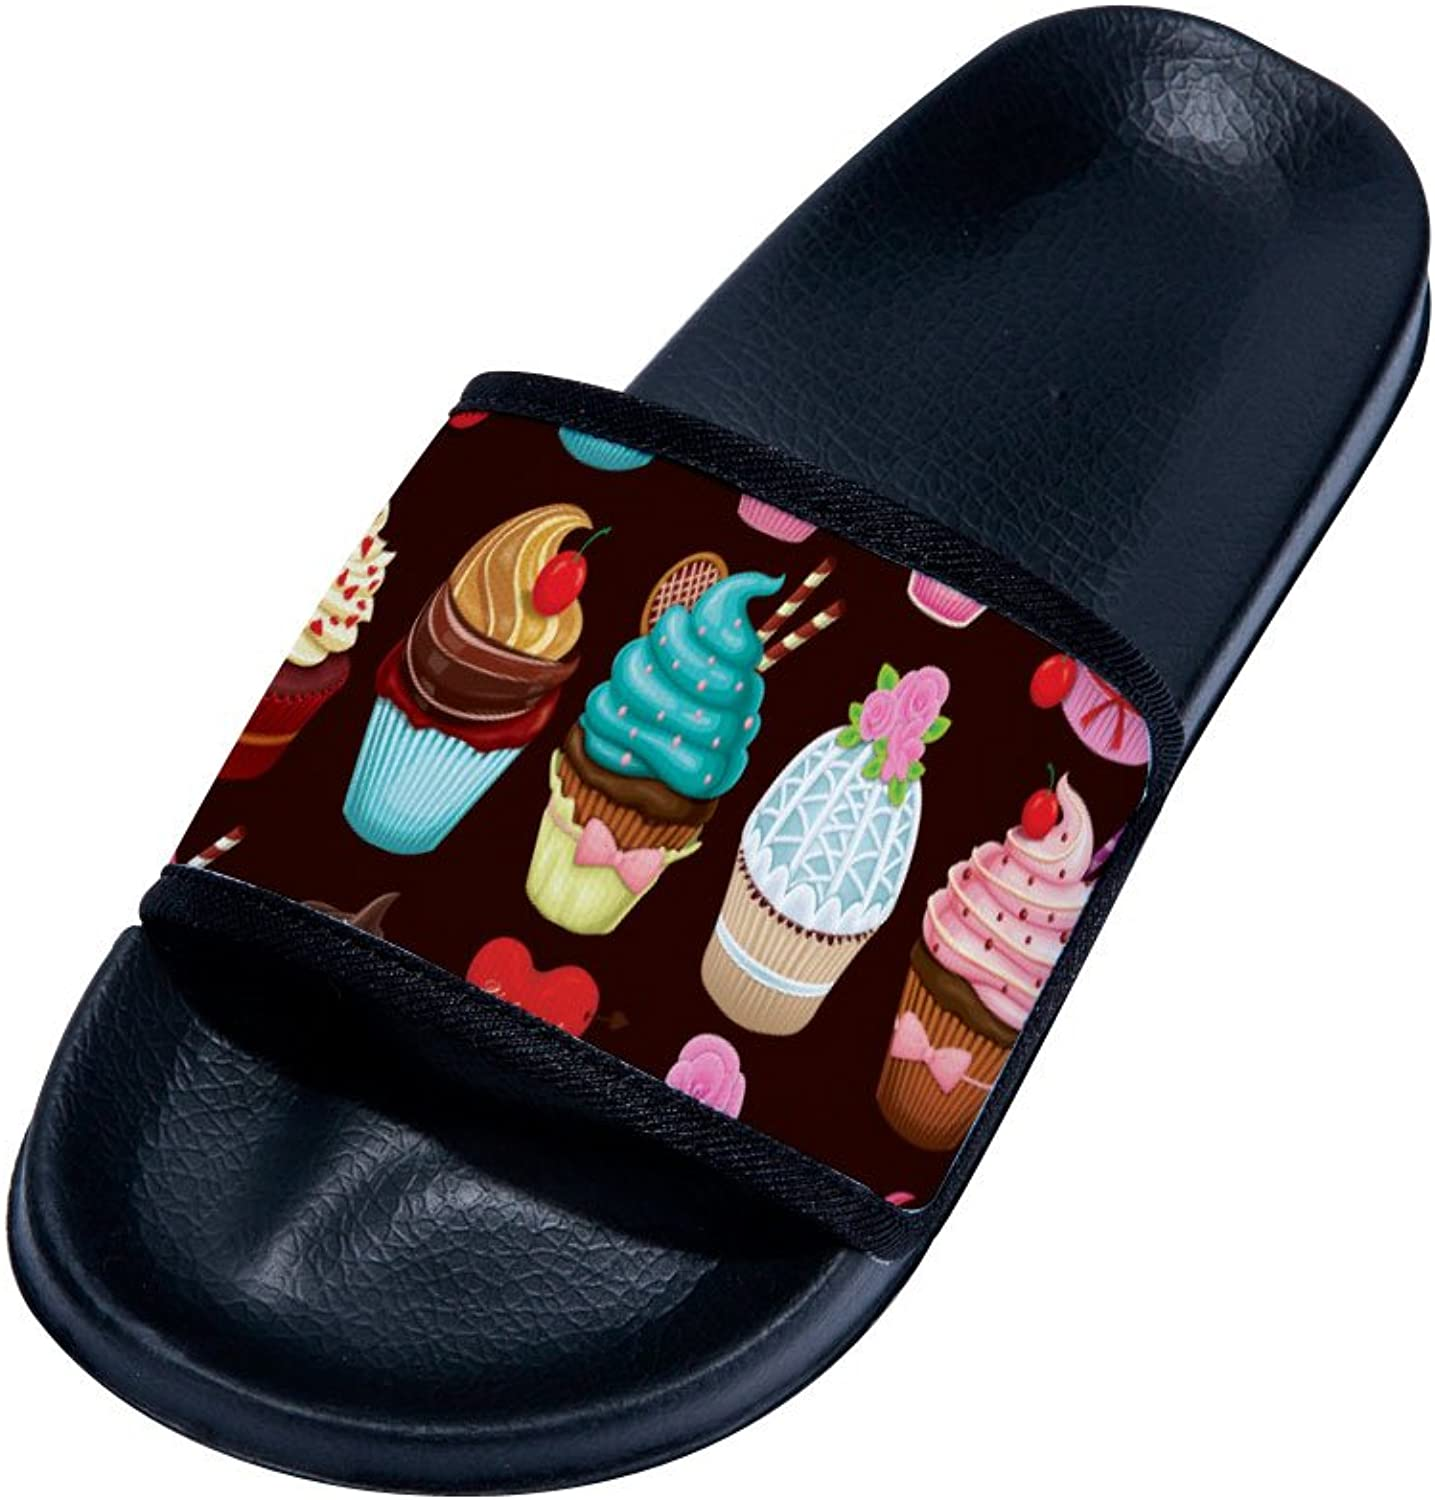 Buteri Cute Cupcakes Summer Breathable Quick-Drying Non-Slip Slippers